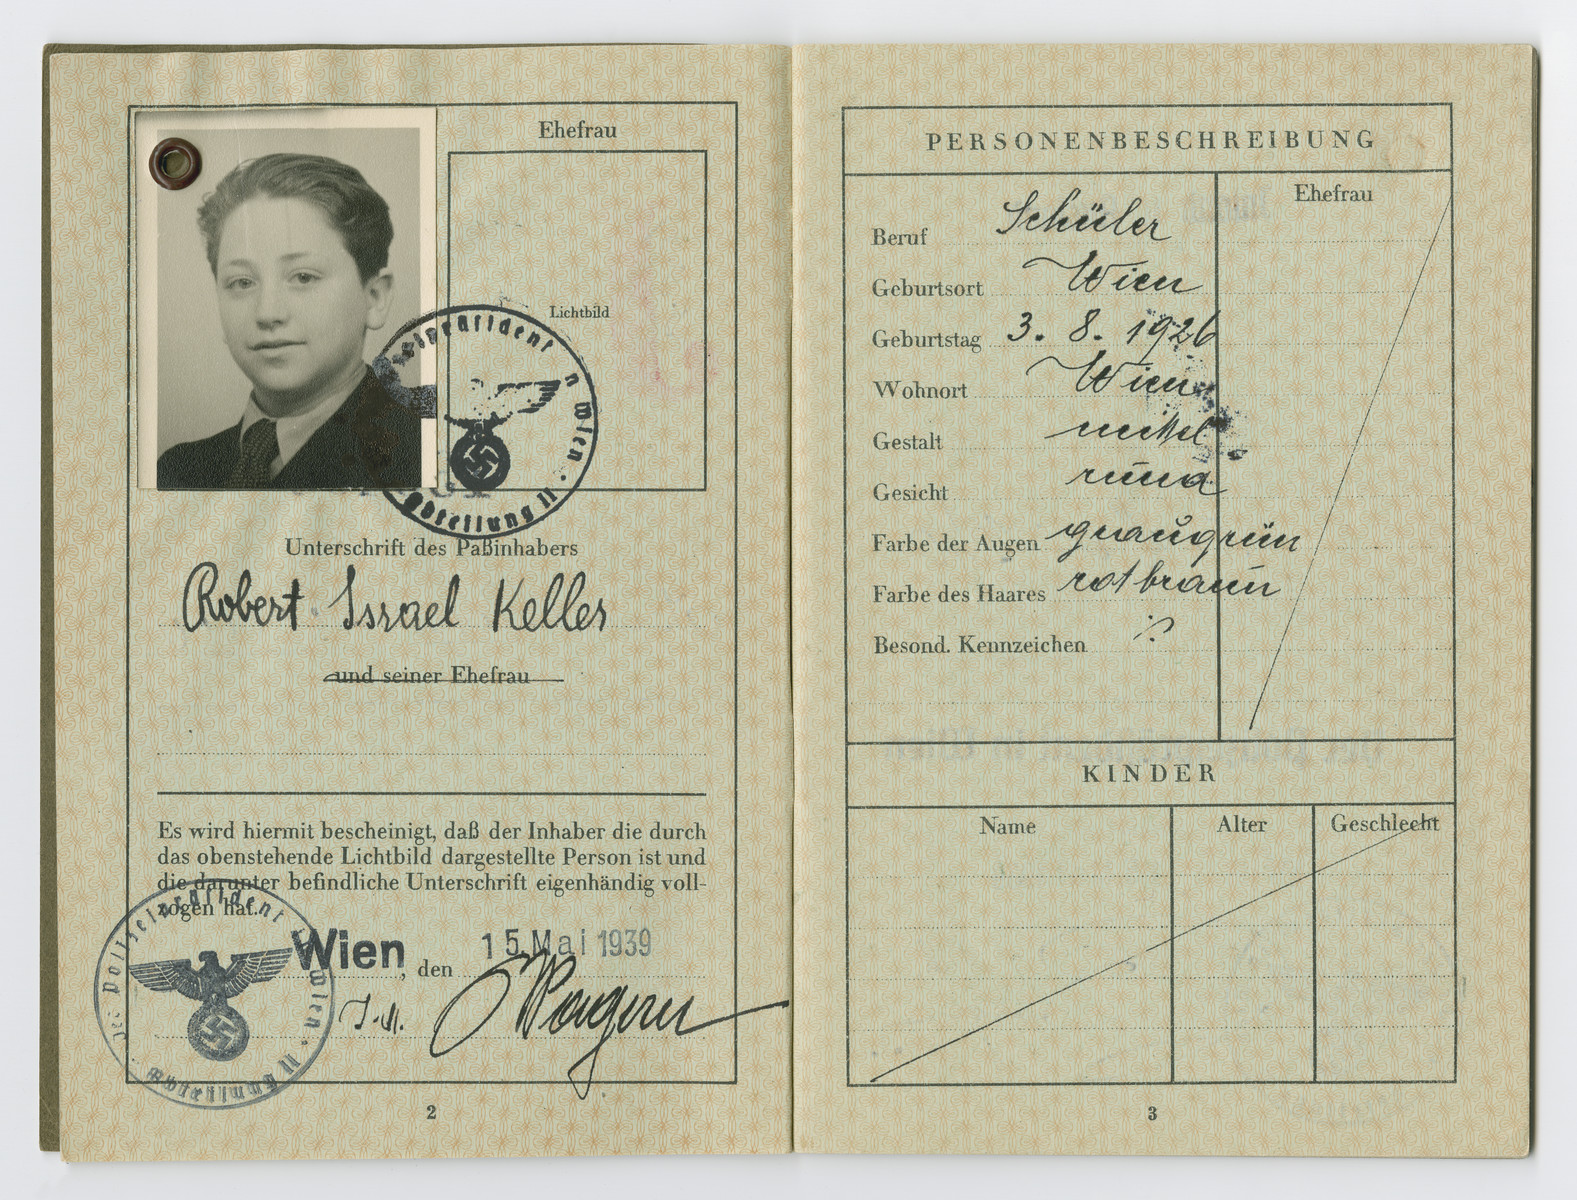 Identification papers issued to Robert Israel Keller stating he was born in Vienna on August 3, 1926.  Israel was not his real middle name, but on August 17, 1938 Nazi officials ordered that all Jewish men assume the middle name Israel, and all Jewish women take the middle name Sara.